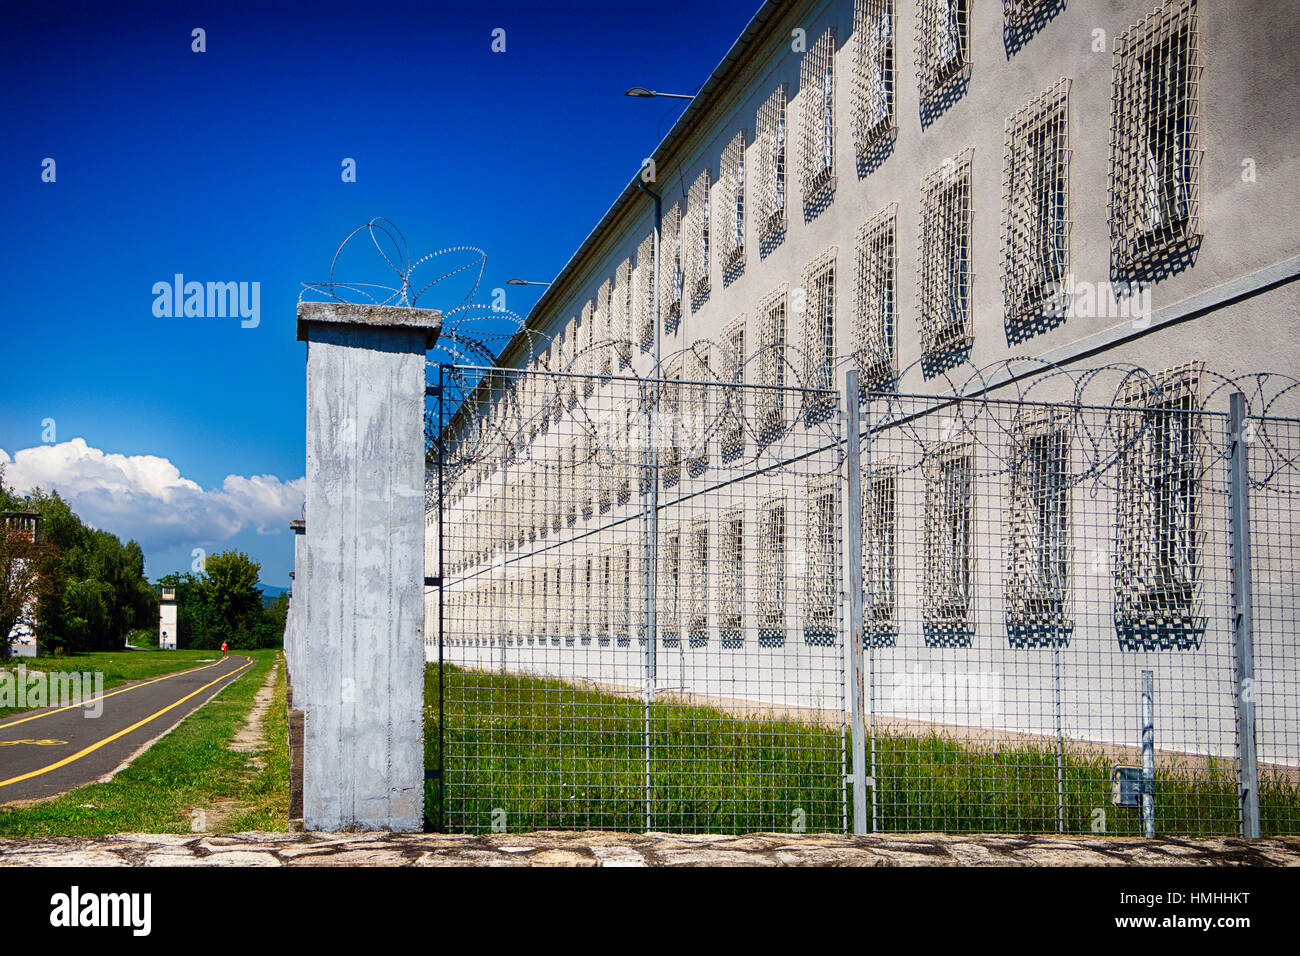 Barbed Wire Fence, State Penitentiary, Vac, Pest County, Hungary - Stock Image